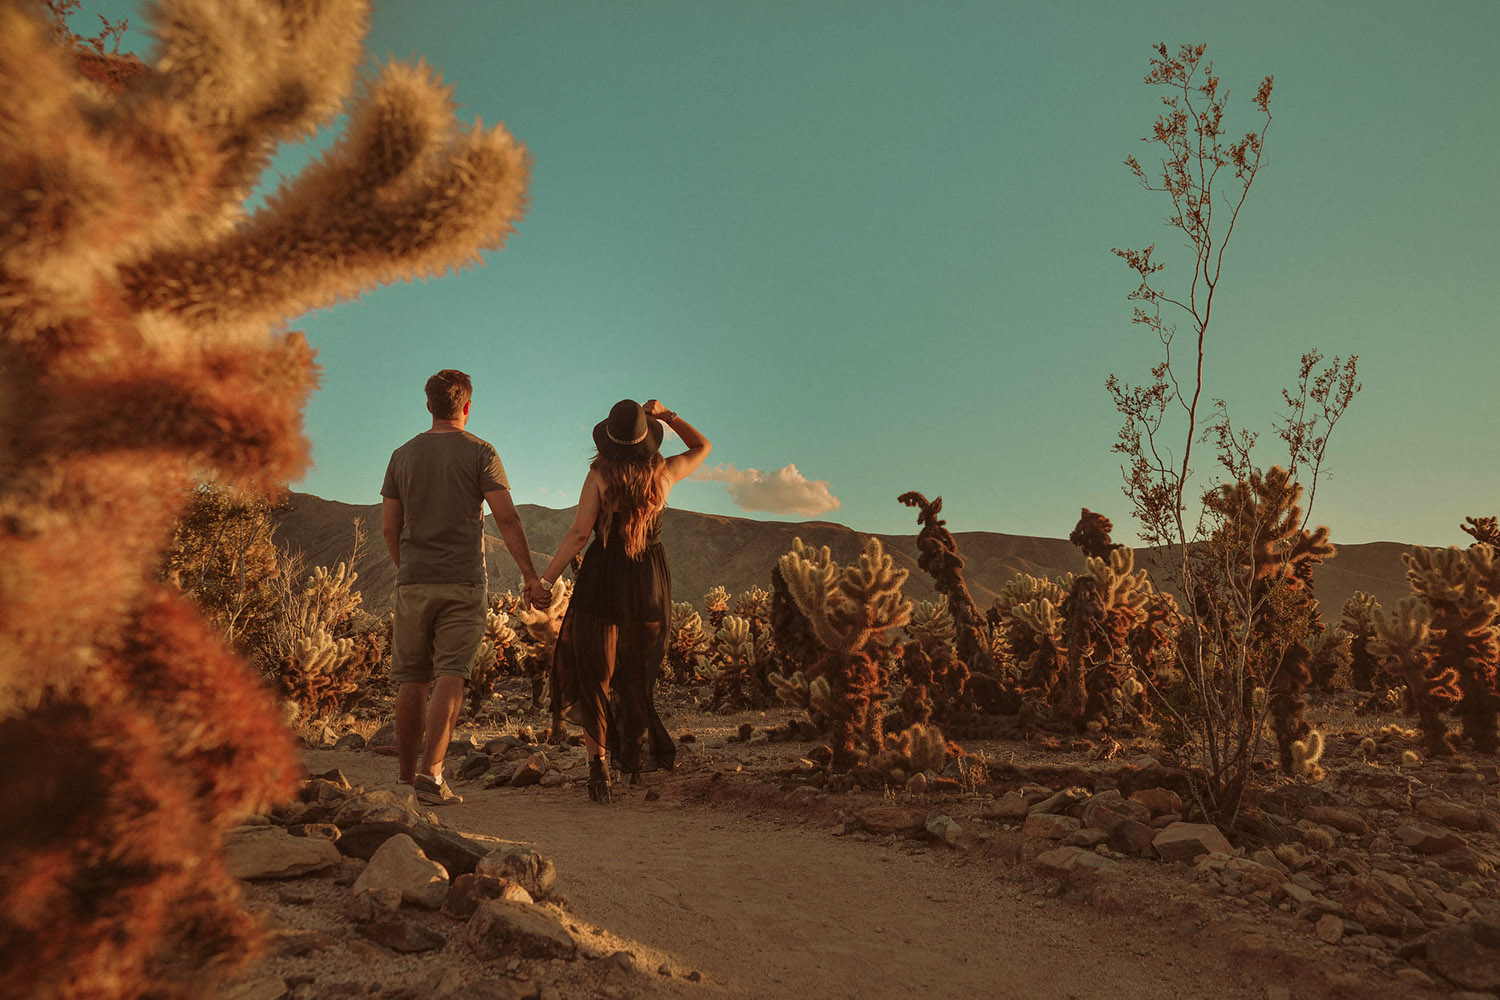 Couple Holing Hands in Joshua Tree National Park